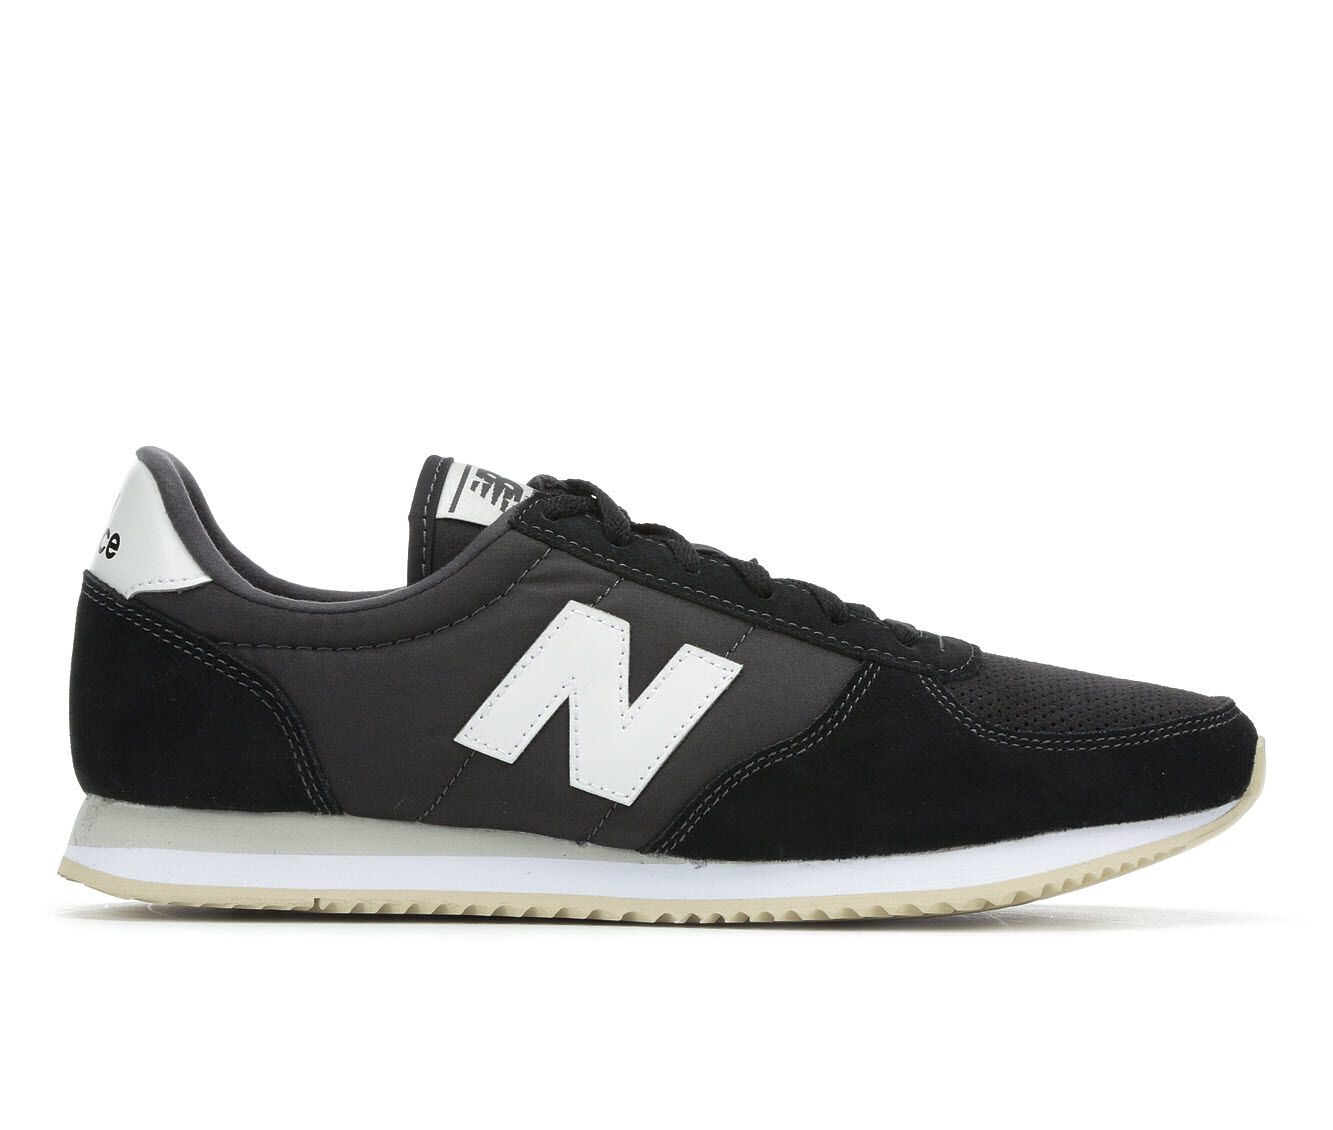 cheapest new Women's New Balance WL220V1 Retro Sneakers Blk/Grey/Cream